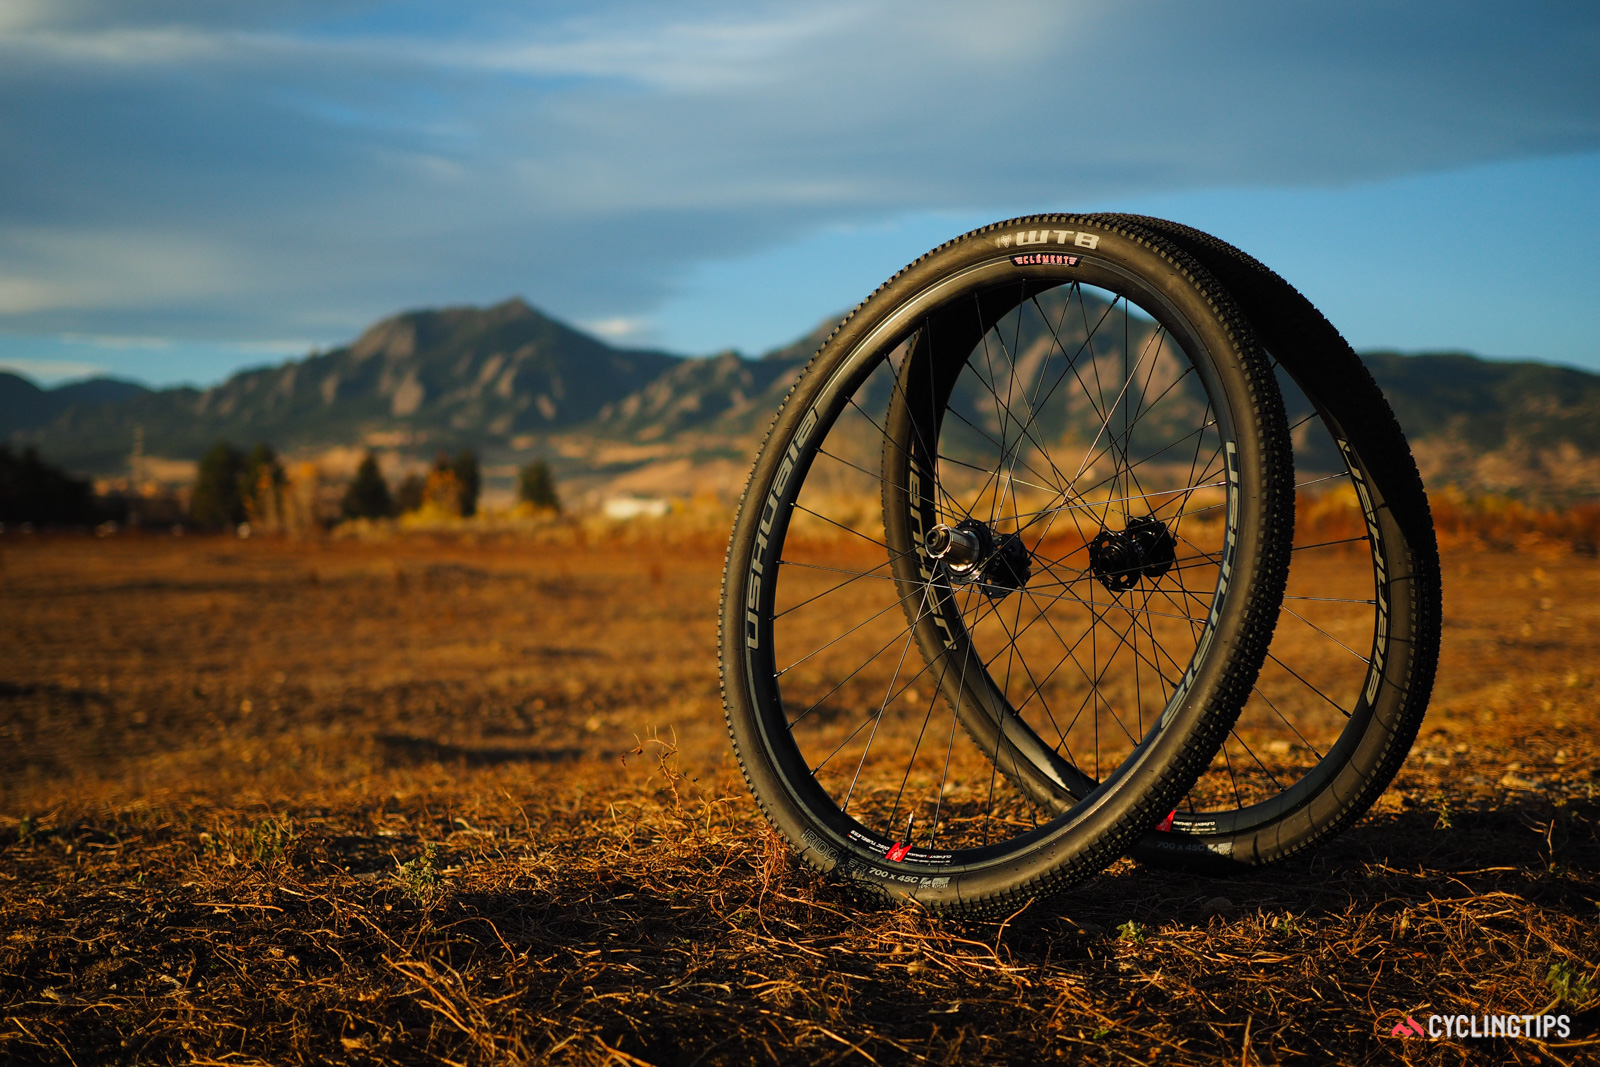 Clement recently expanded into complete wheelsets with the debut of the new Ushuaia. The tubeless-compatible aluminum clinchers have a 23mm internal width that is specifically intended to be matched with high-volume tires.